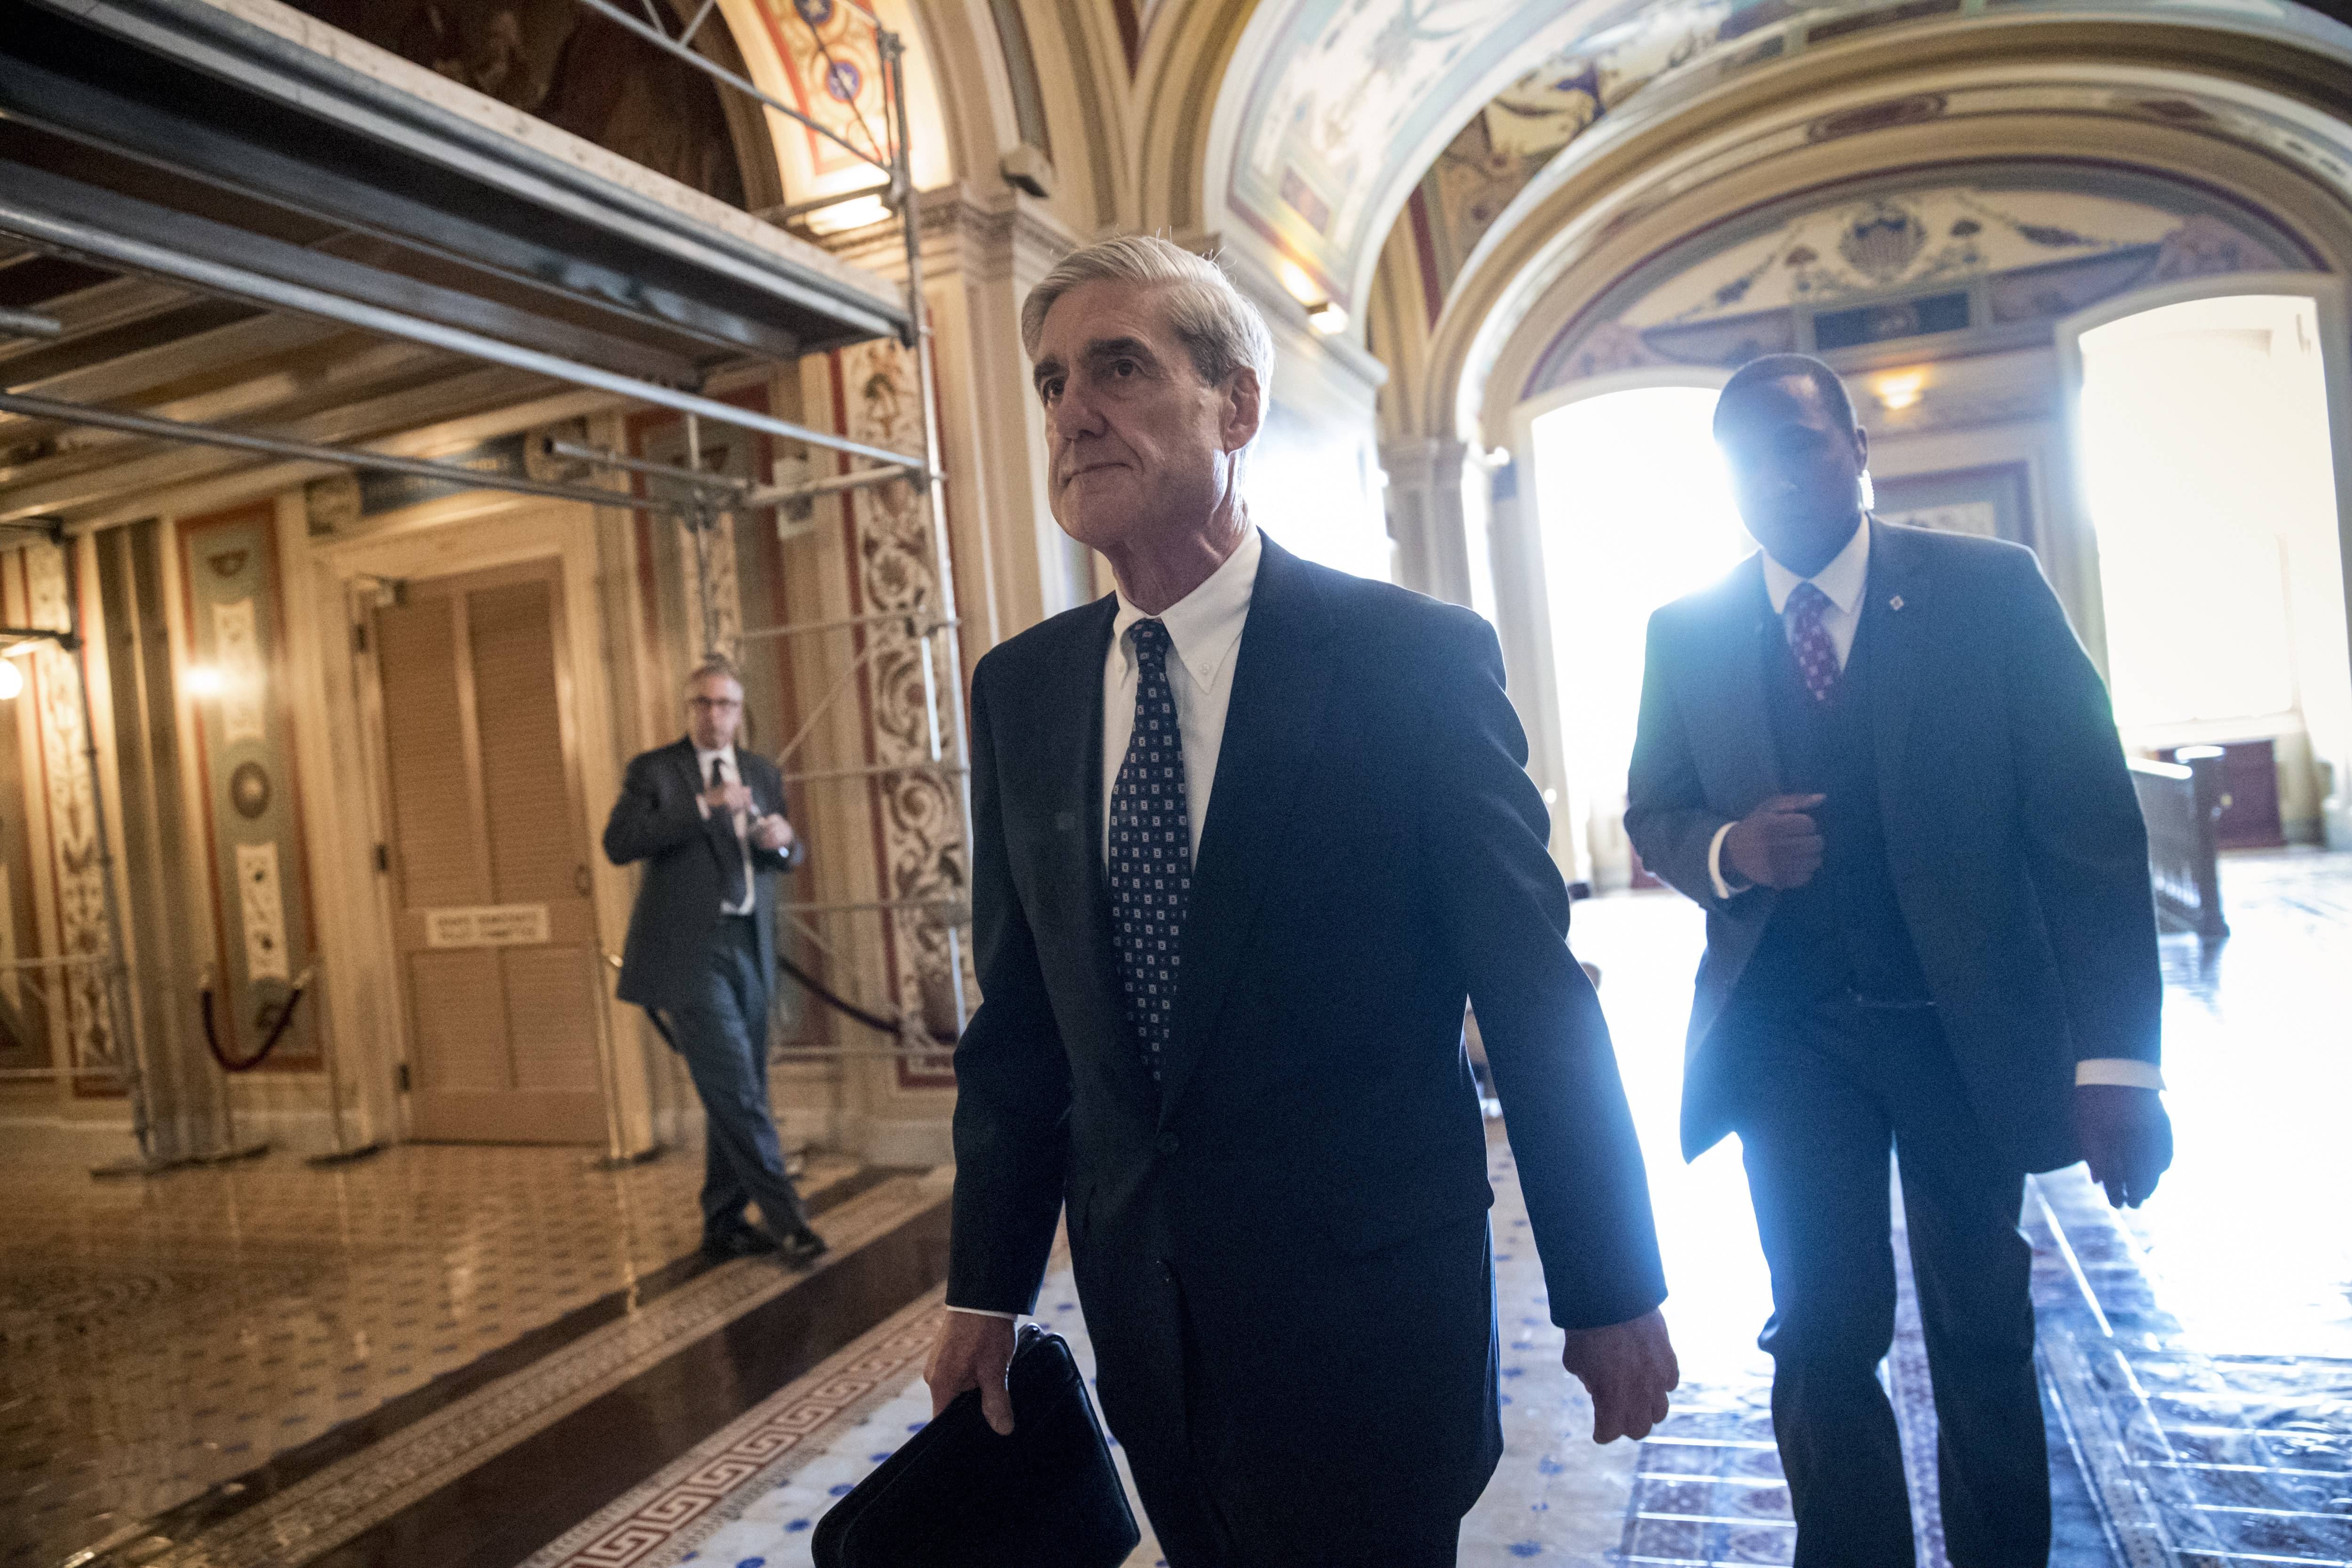 Special Counsel Robert Mueller is reported to have convened a grand jury to look into Russia's meddling in the 2016 presidential election.